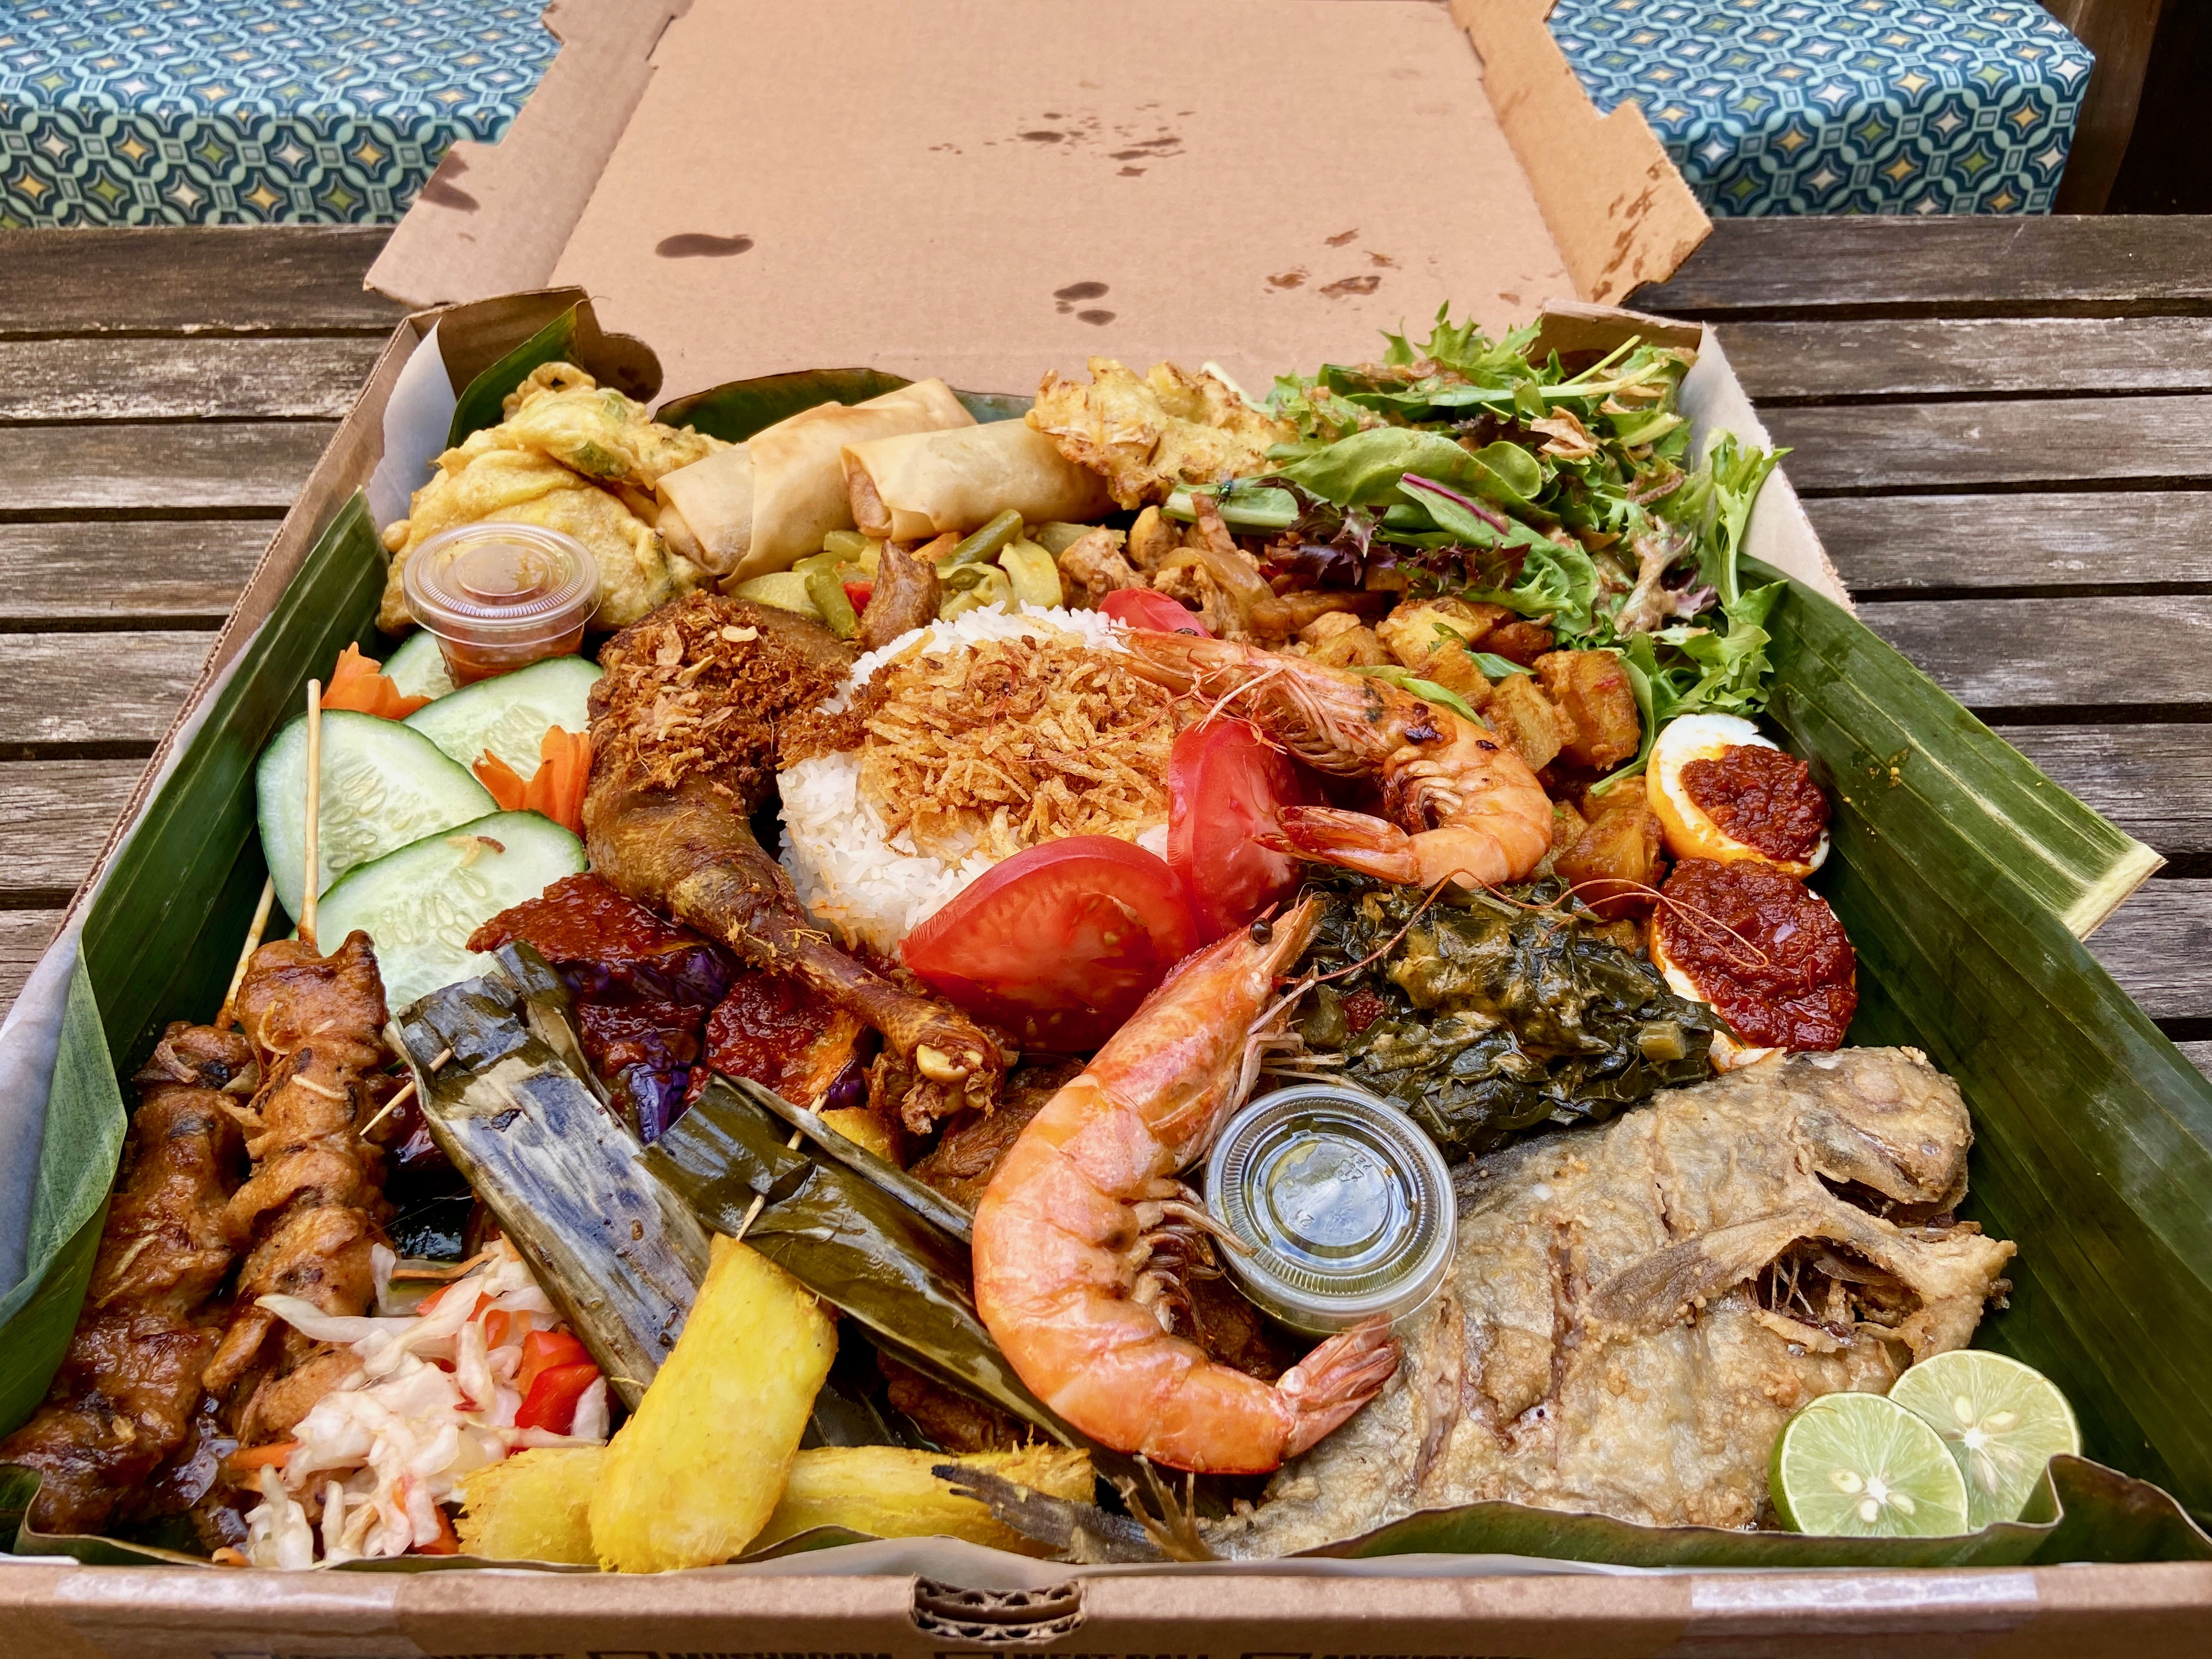 cardboard pizza box filled with indonesian dishes including rice, fried whole fish, and prawns